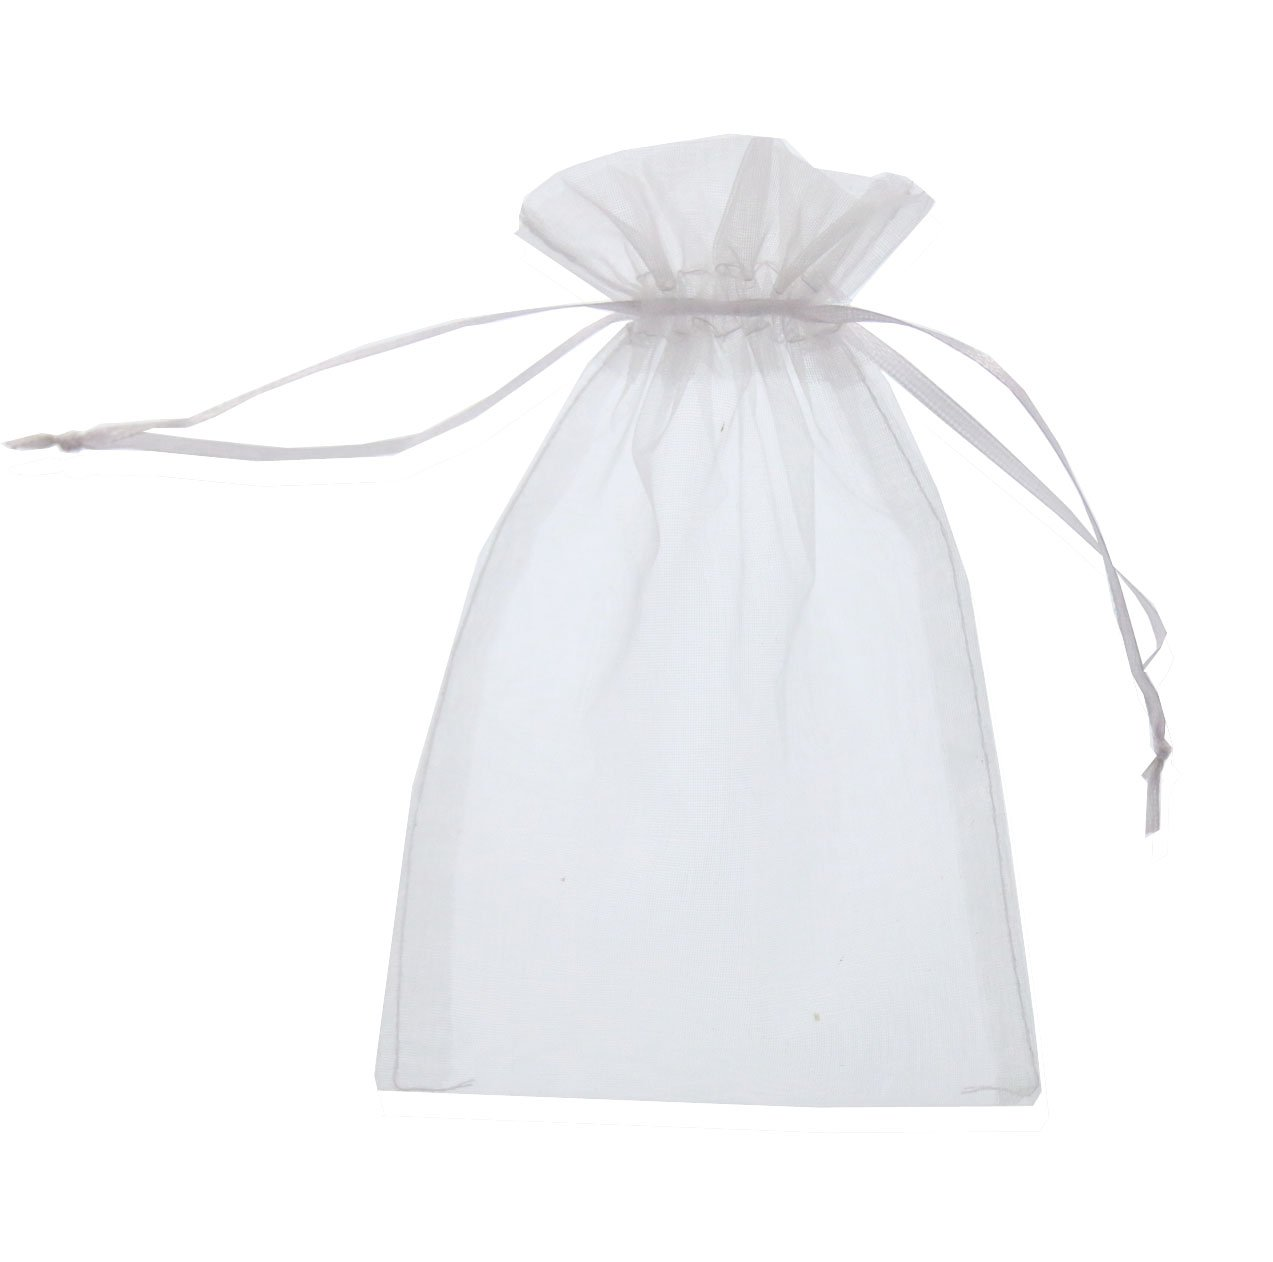 SumDirect 100Pcs 5x7 inches Sheer Drawstring Organza Jewelry Pouches Wedding Party Christmas Favor Gift Bags (White)